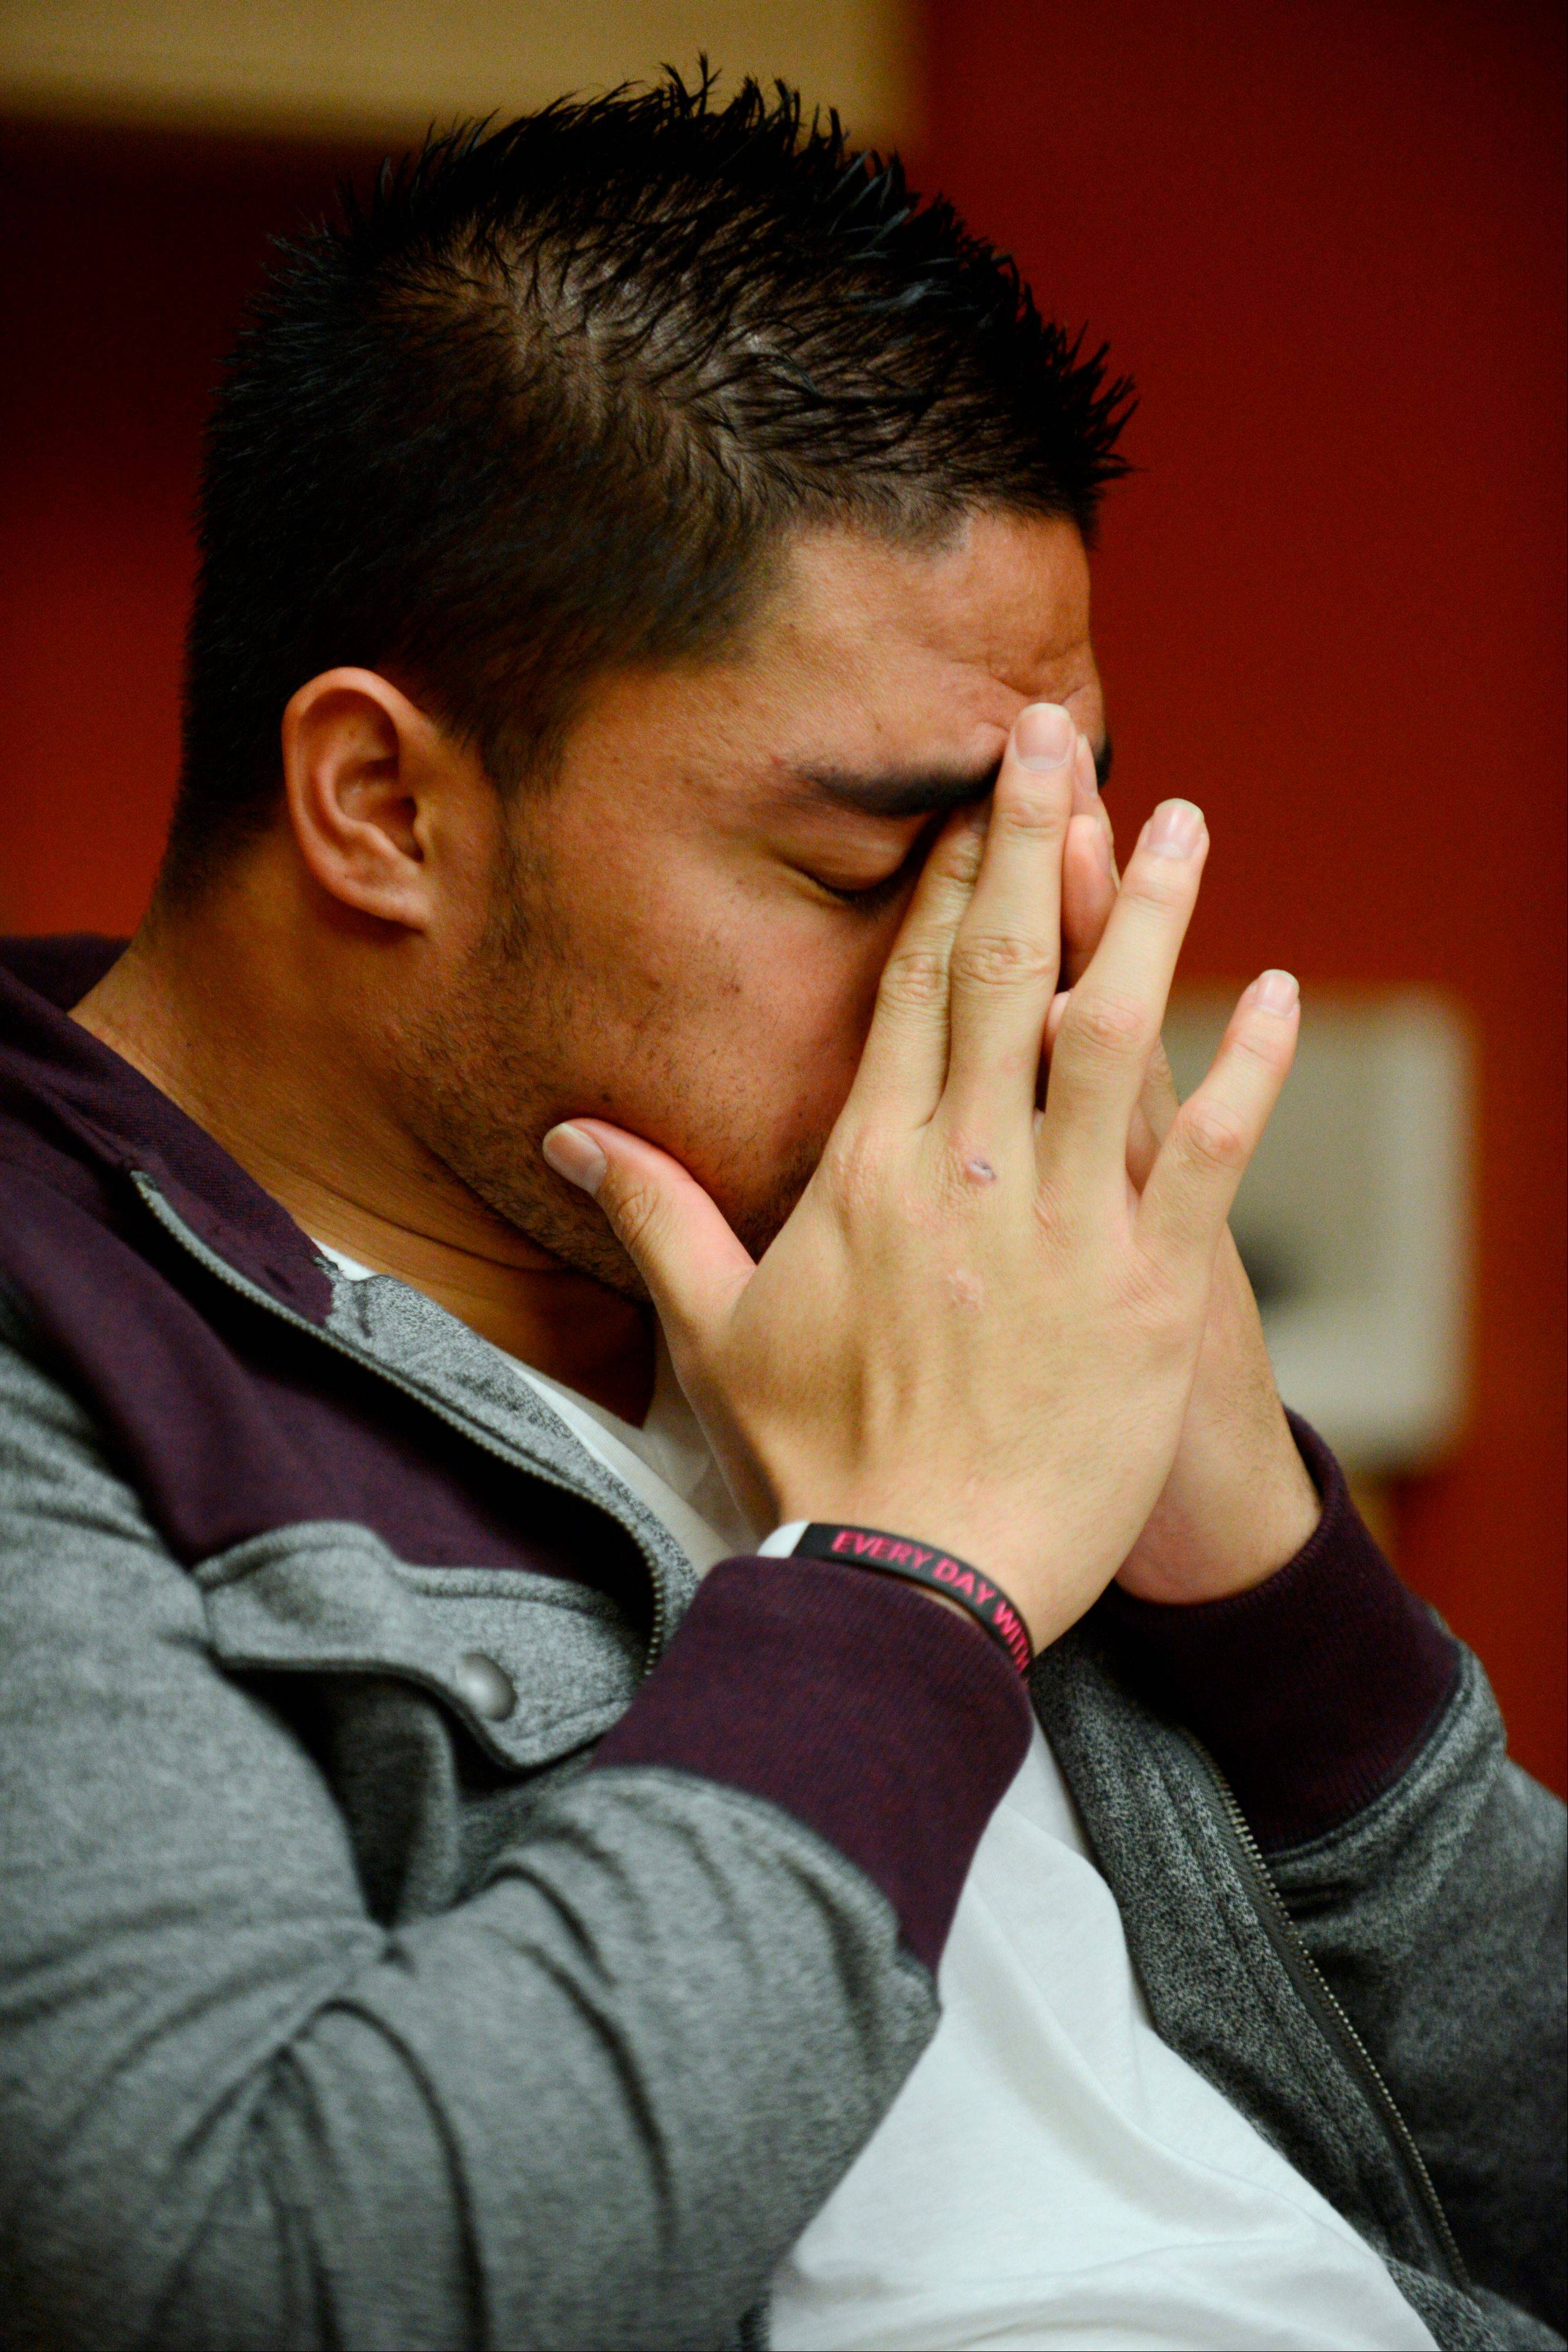 Notre Dame linebacker Manti Te'o pauses during an interview with ESPN on Jan. 18. Te'o maintains he was never involved in creating the dead girlfriend hoax.